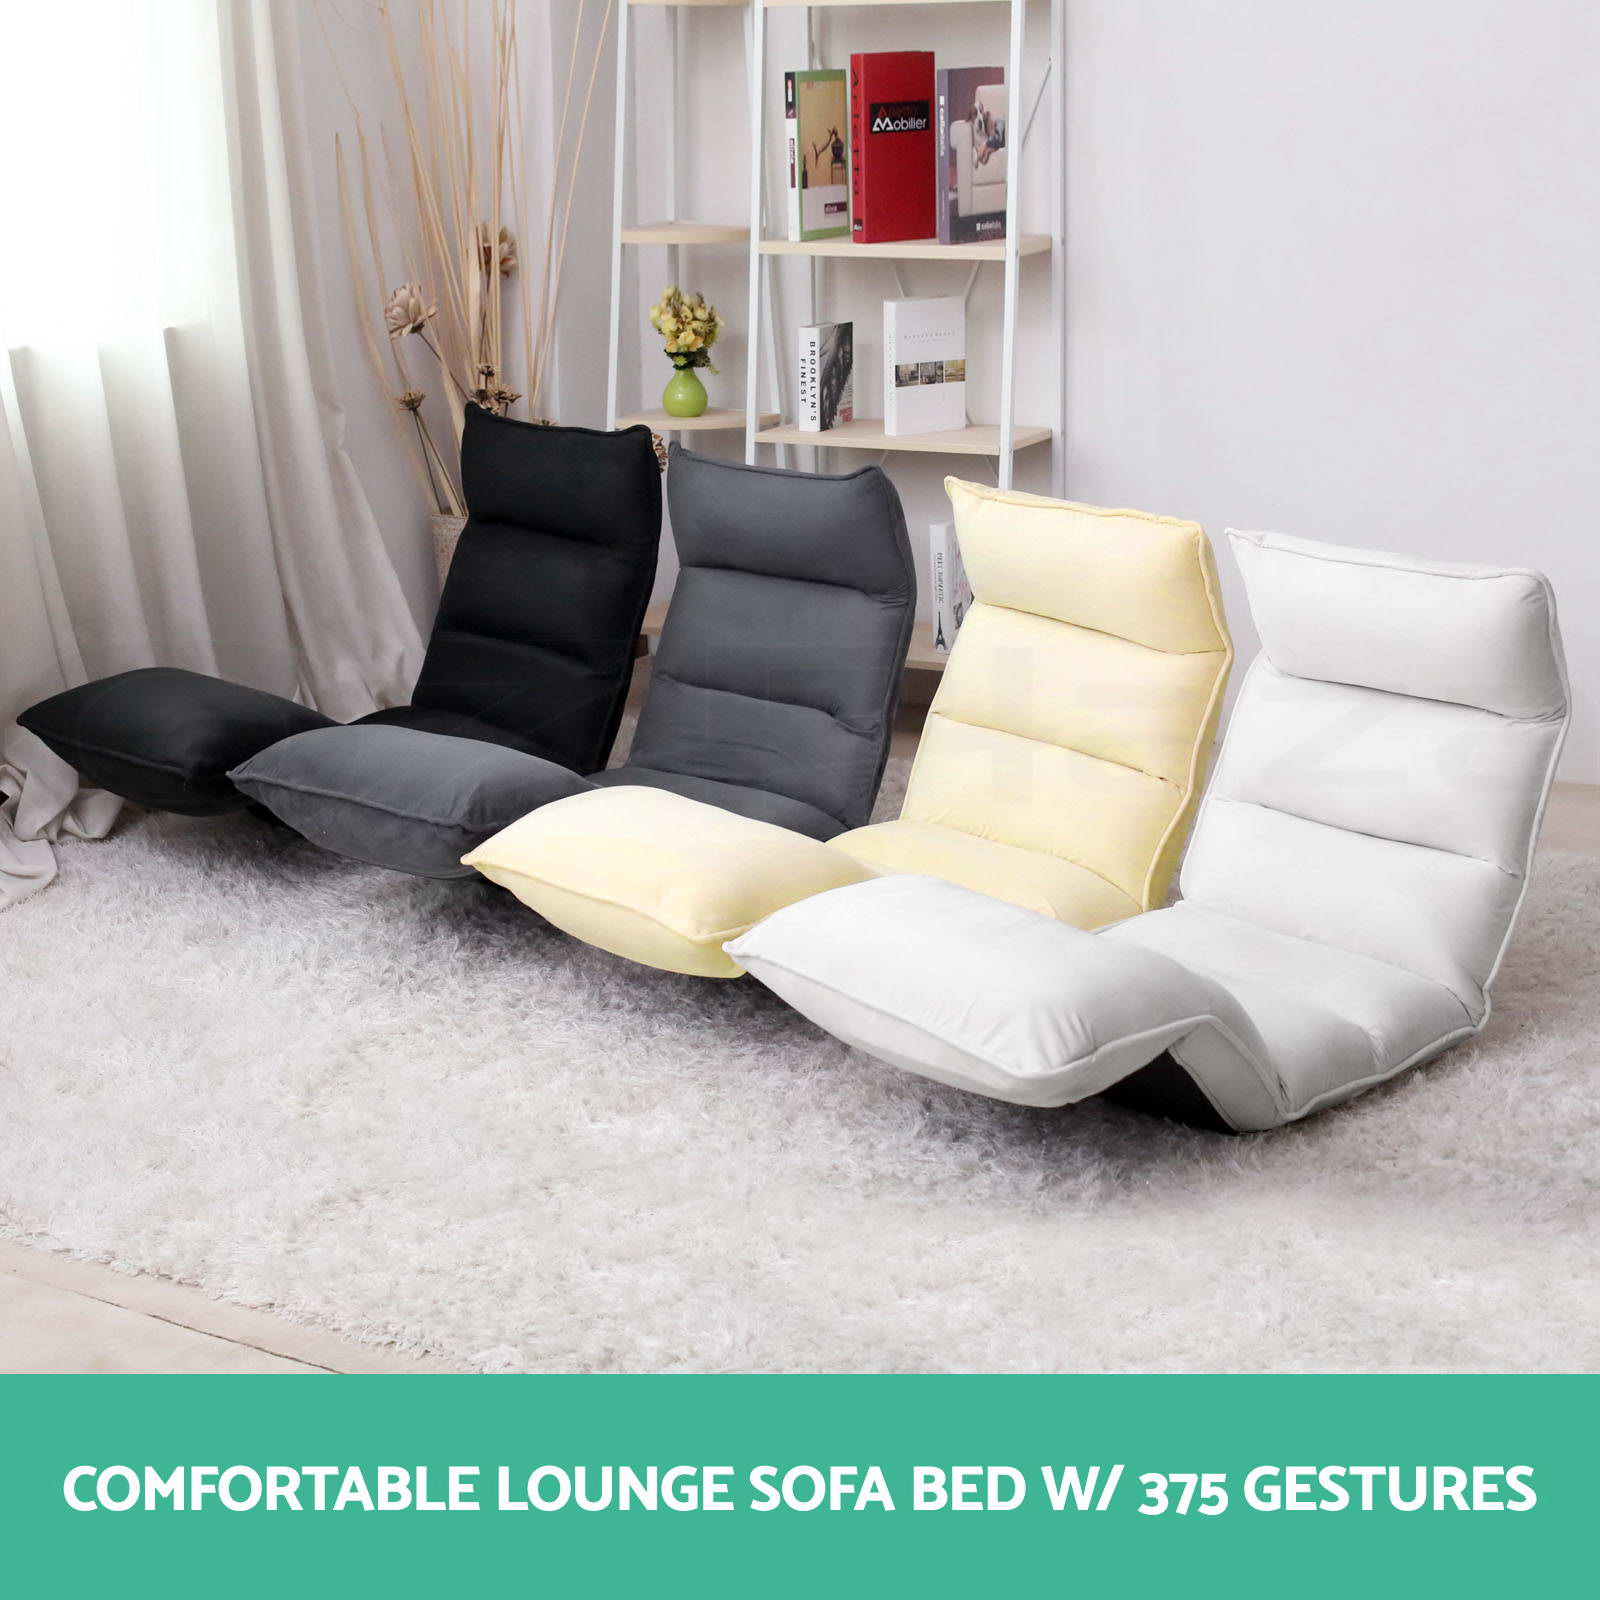 Lounge Sofa Bed Floor Recliner Folding Chaise Chair Adjustable Foldable